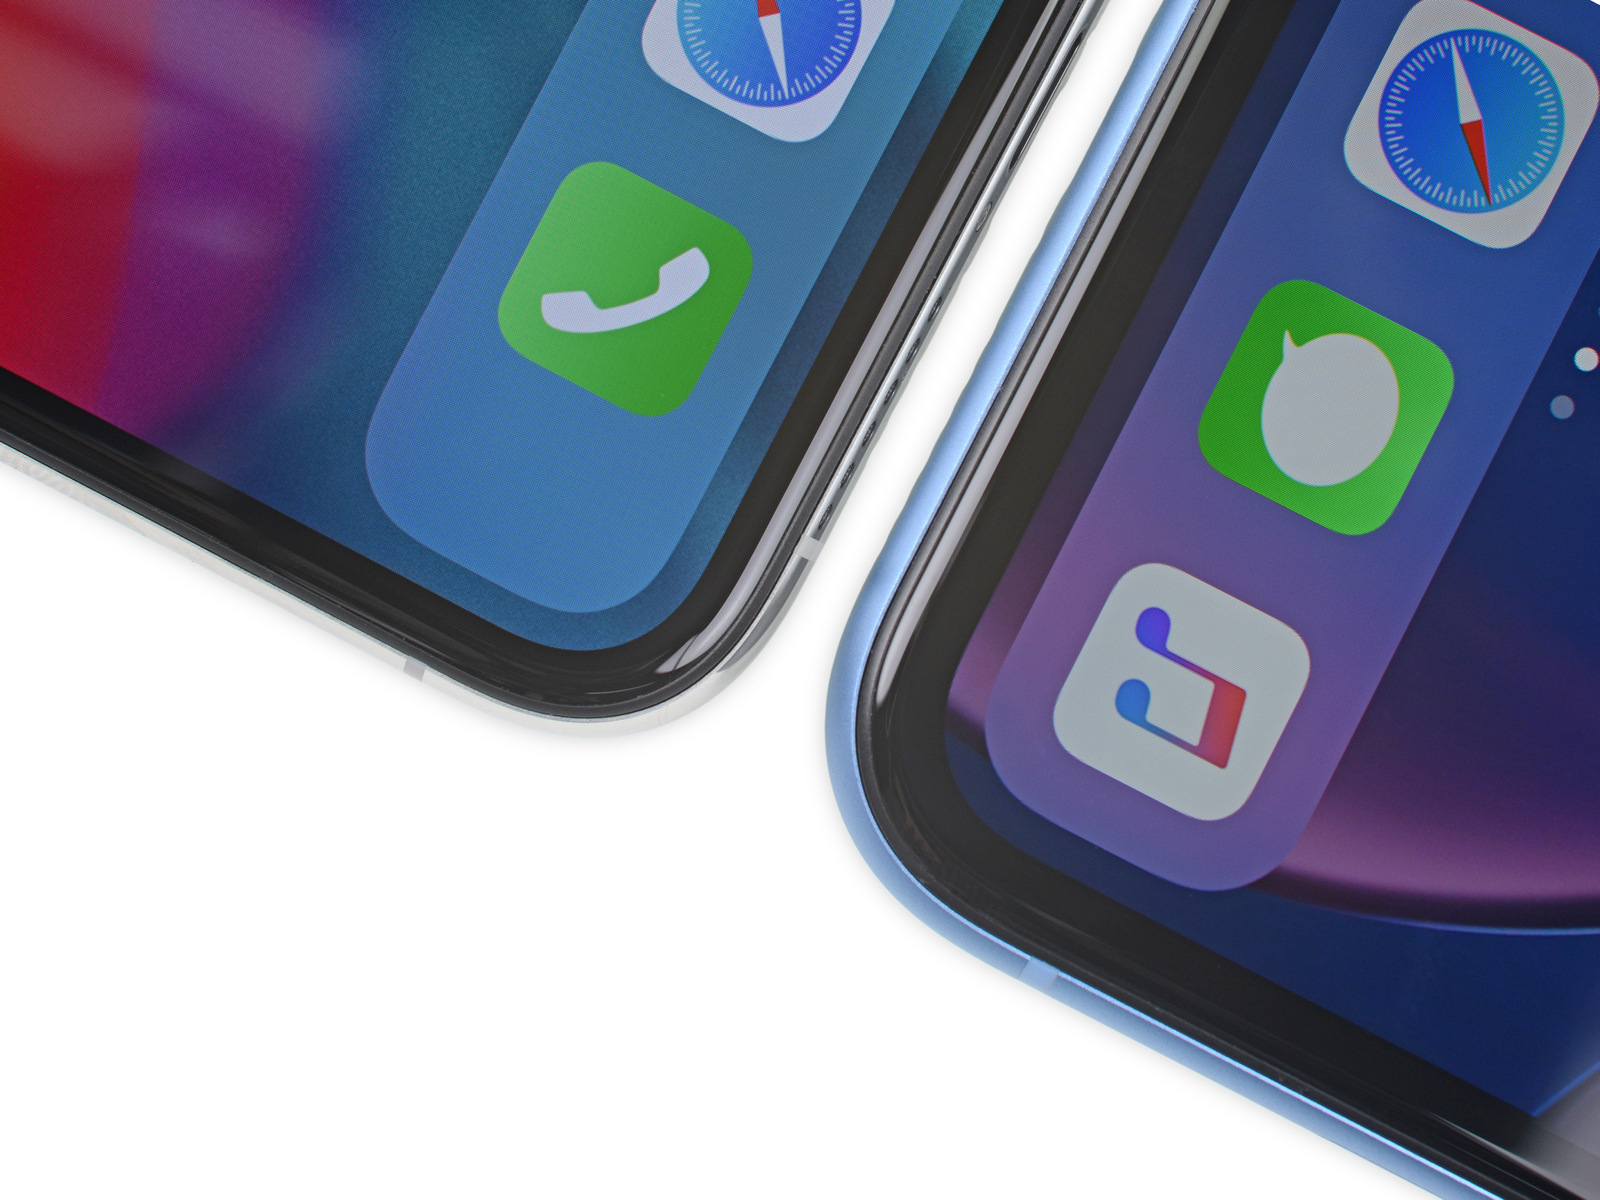 iPhone XR Generates Little Excitement, but that Doesn't Mean it won't Sell Well